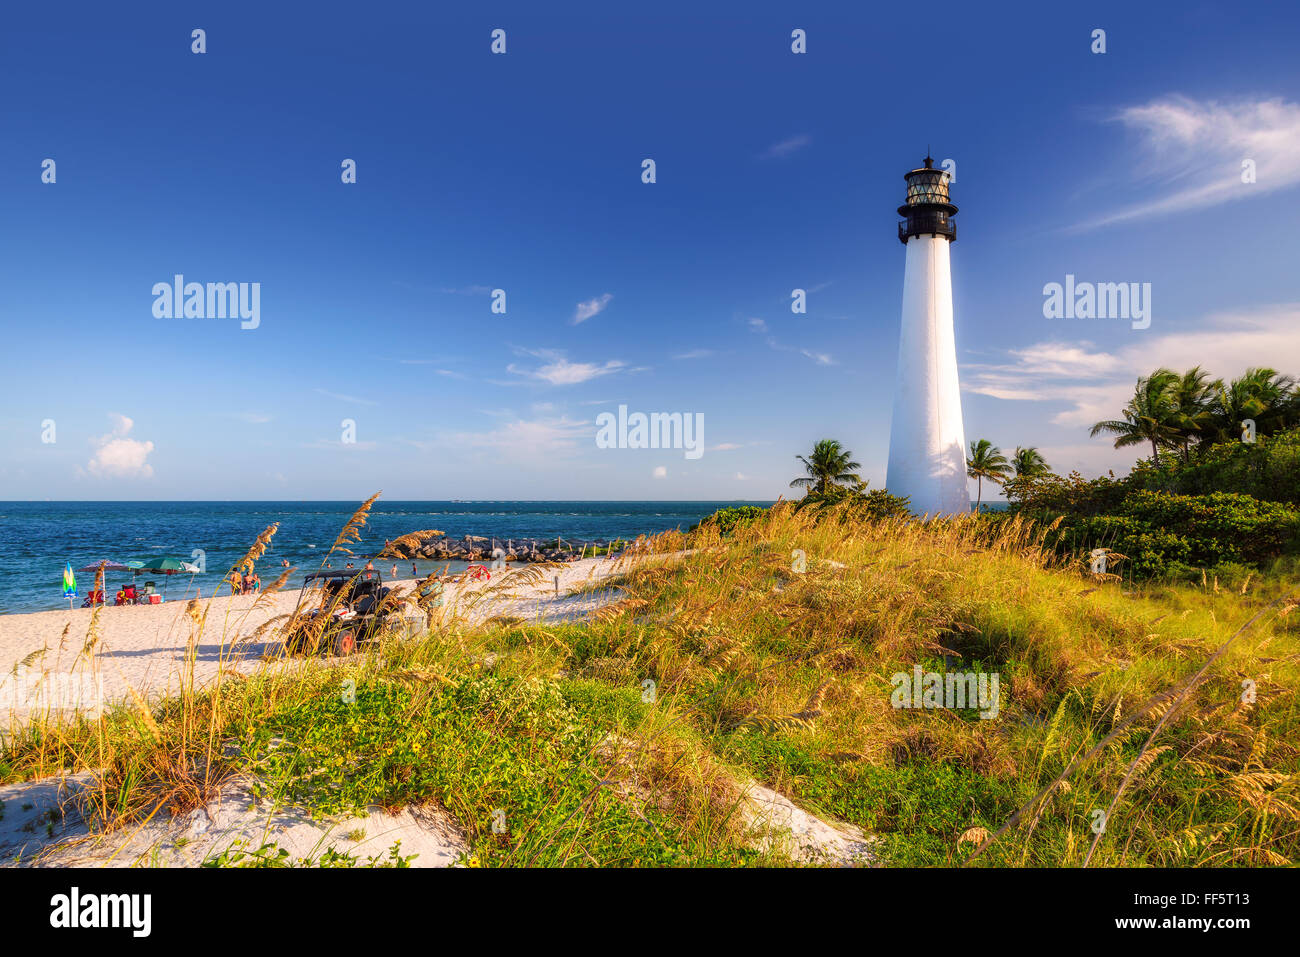 The Beach and Cape Florida lighthouse at sunset, Key Biscayne, Miami Stock Photo